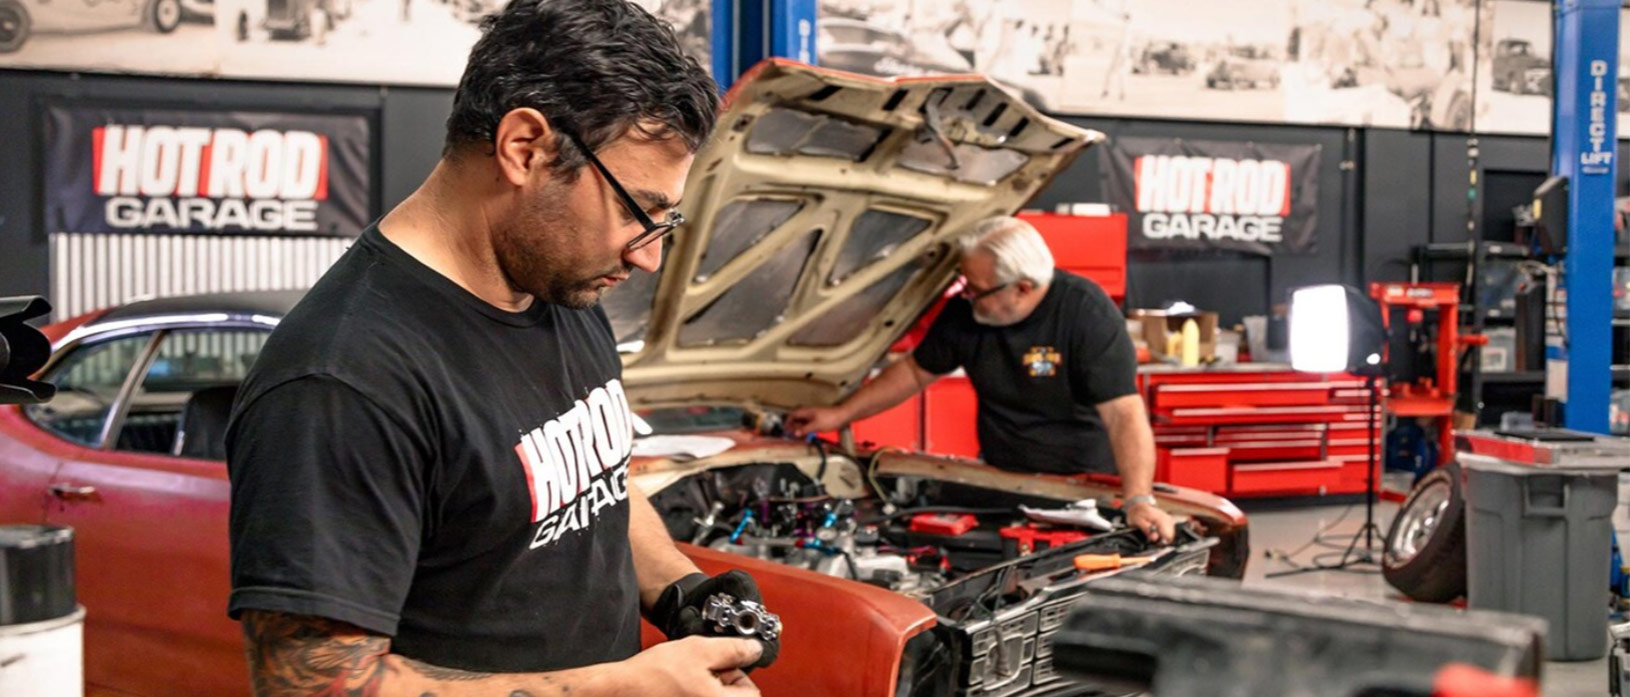 two men working on a car in their garage